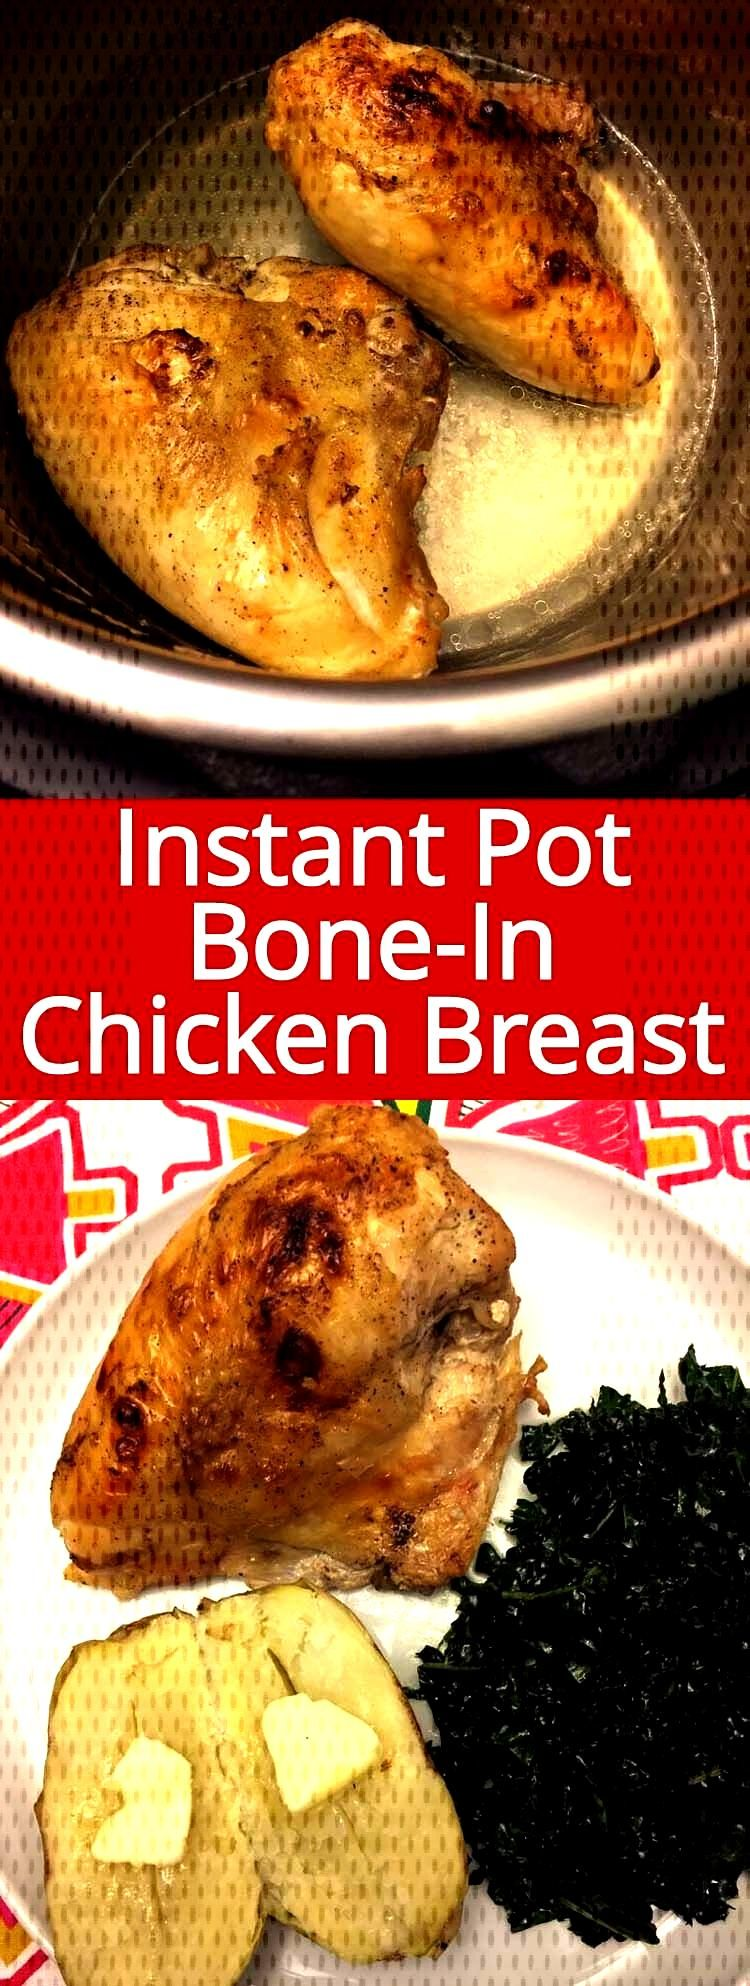 This Instant Pot bone-in chicken breast is amazing! So tender and juicy, it never dries out! Instan